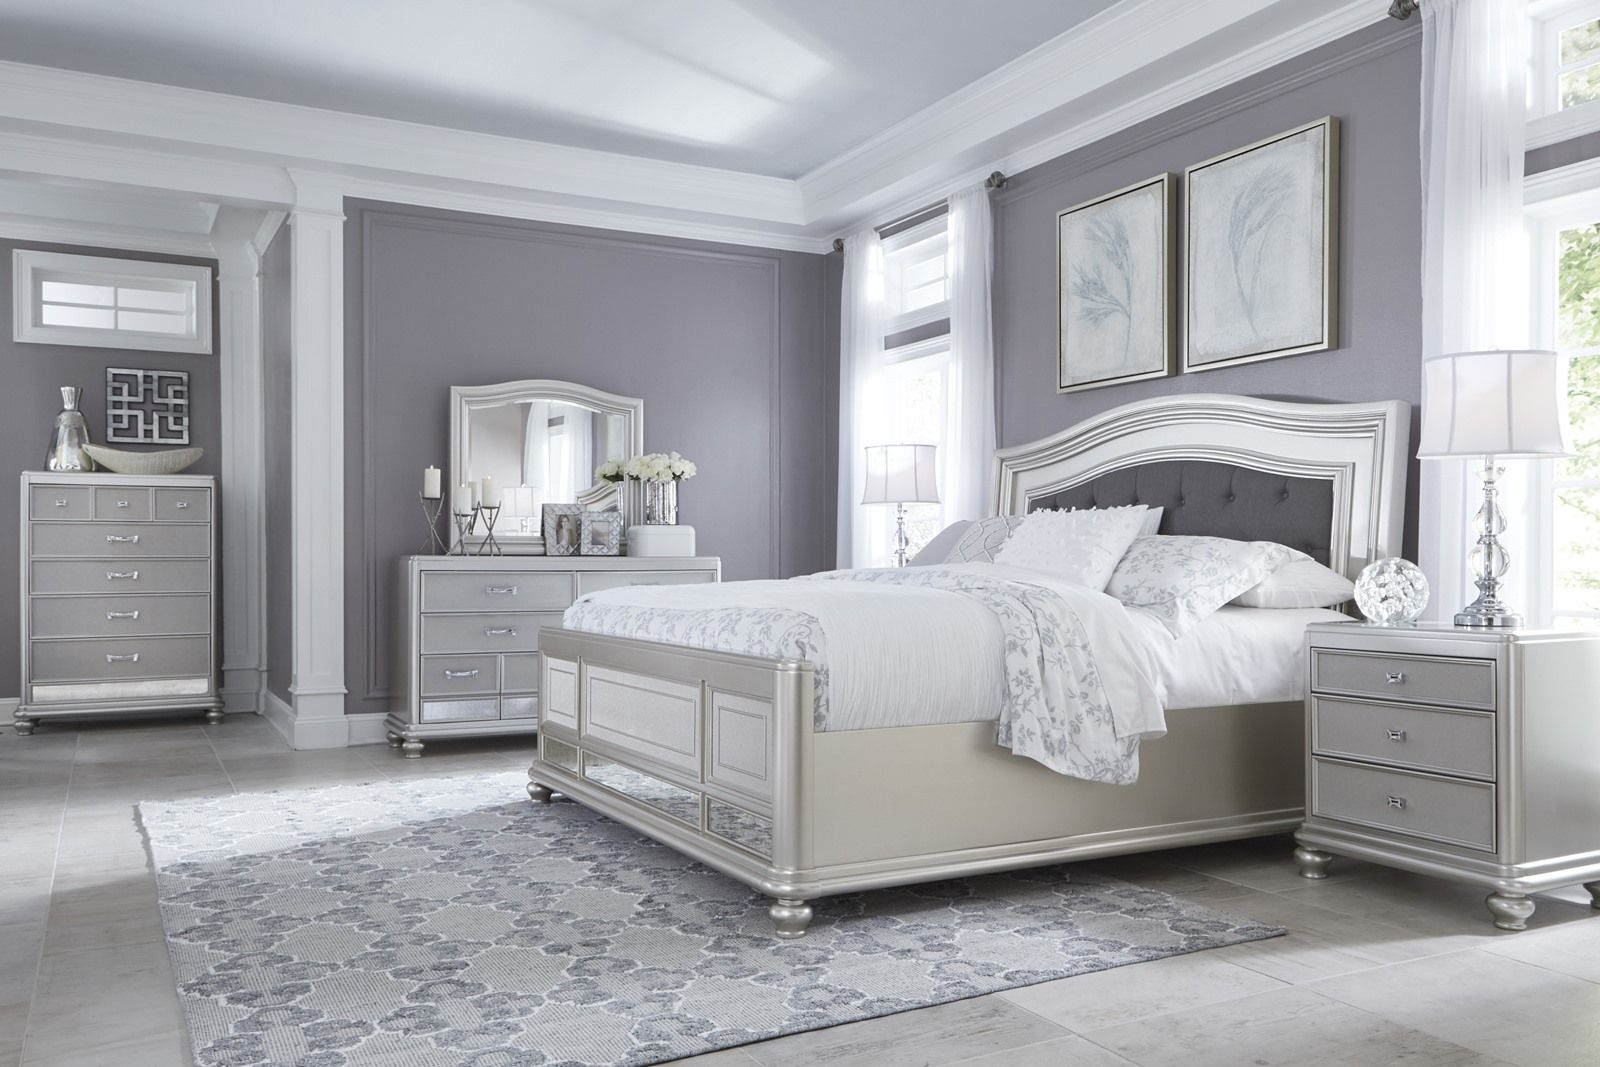 coralayne 4 piece upholstered panel bedroom set in silver made coralayne 4 piece upholstered panel bedroom set in silver made with paint grade materials including